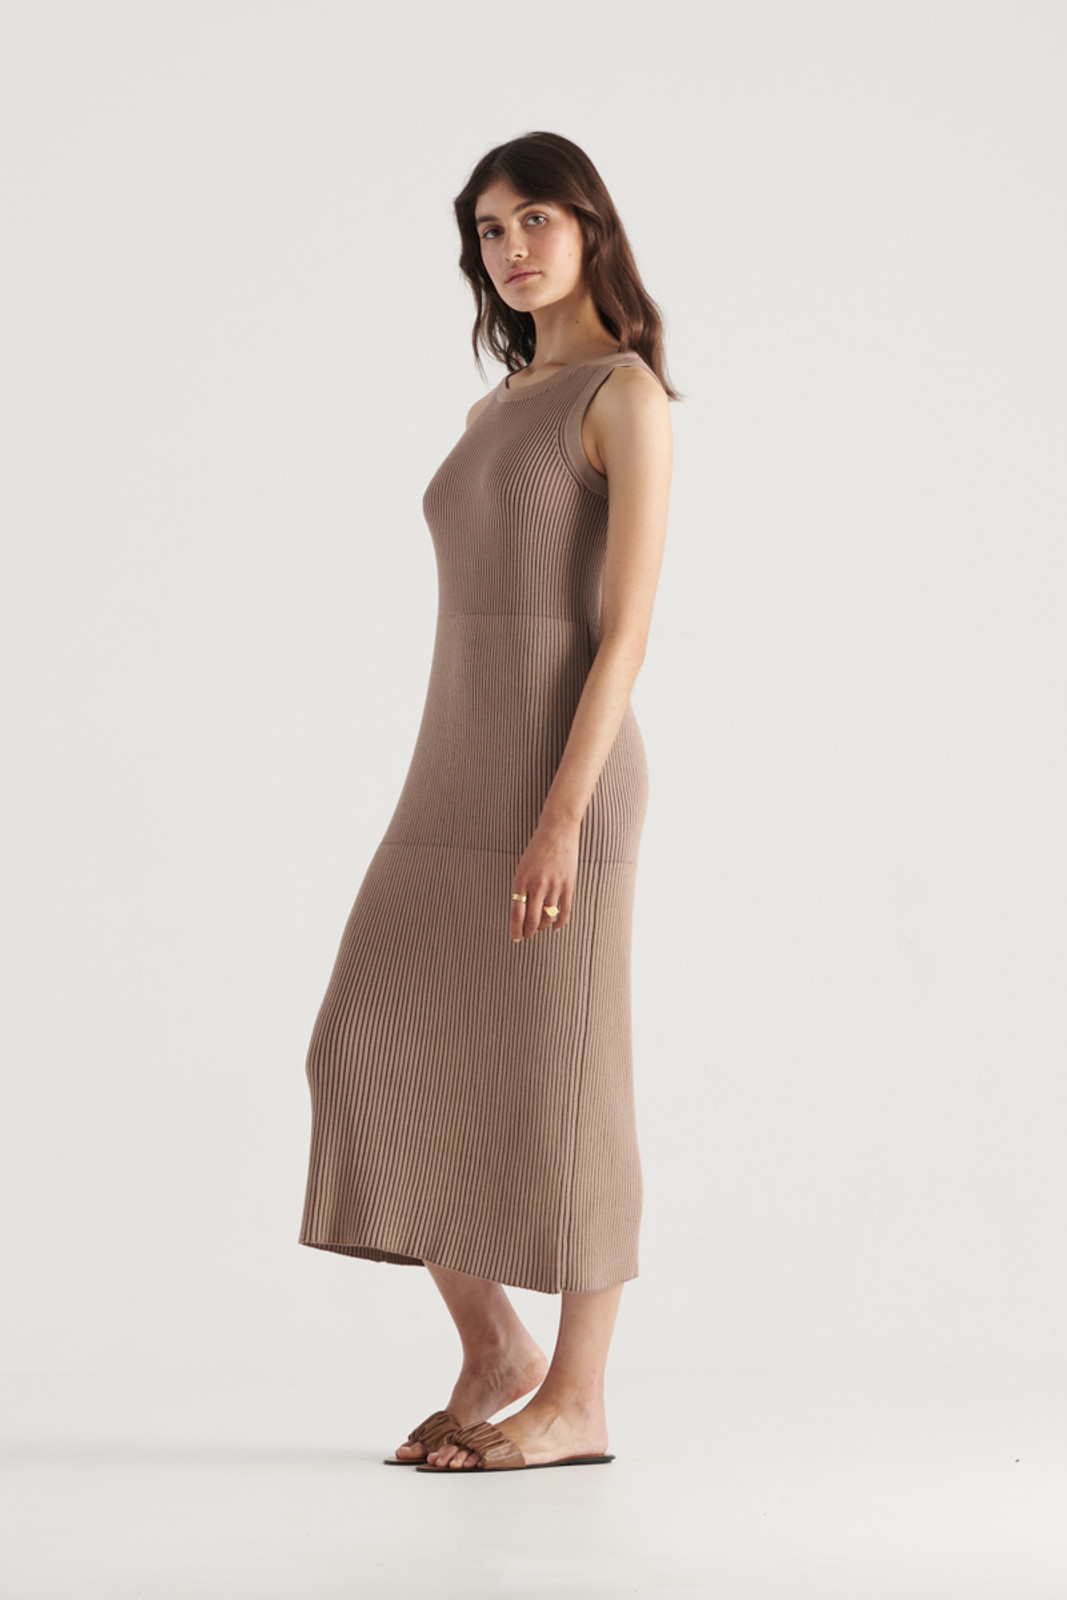 Elka Collective WomensBowie Knit Dress Taupe  1